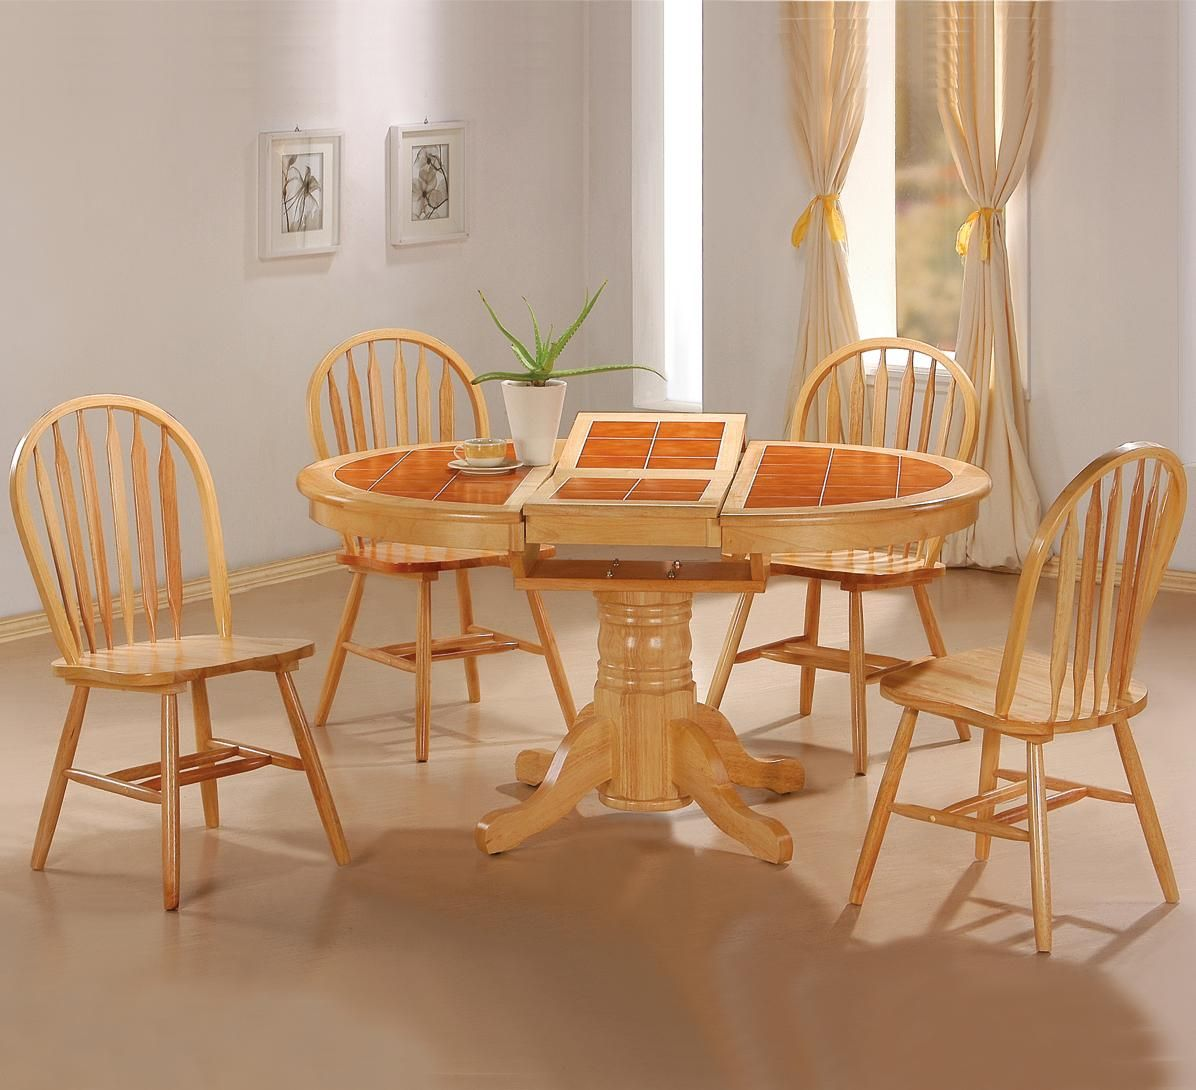 Damen Natural Wood Dining Table : oak kitchen table sets - pezcame.com